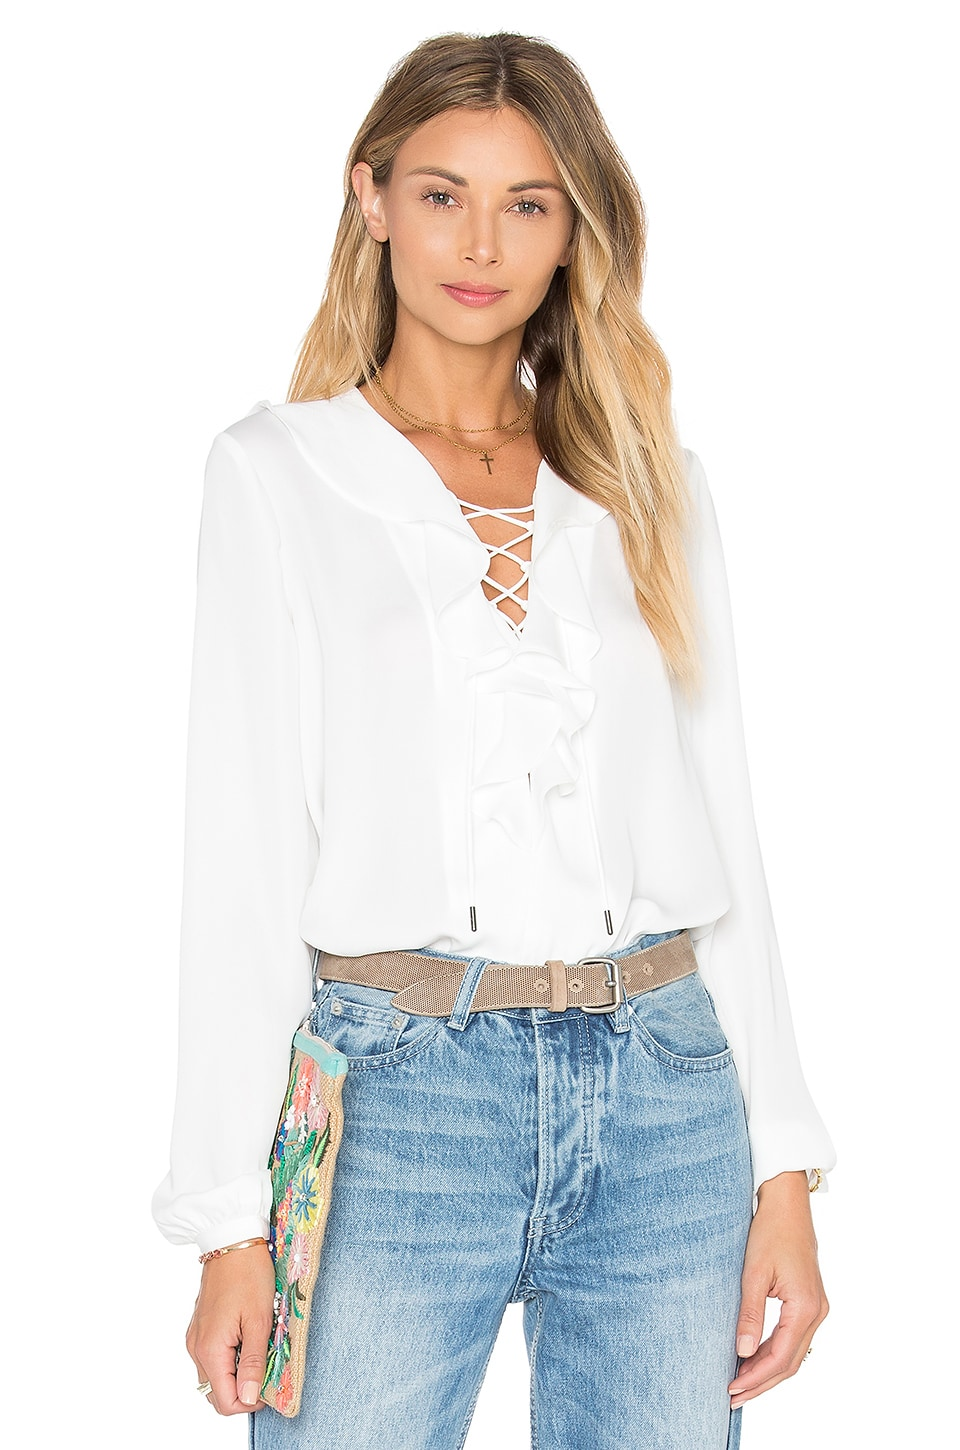 L'Academie The Ruffle Boho Blouse in Ivory